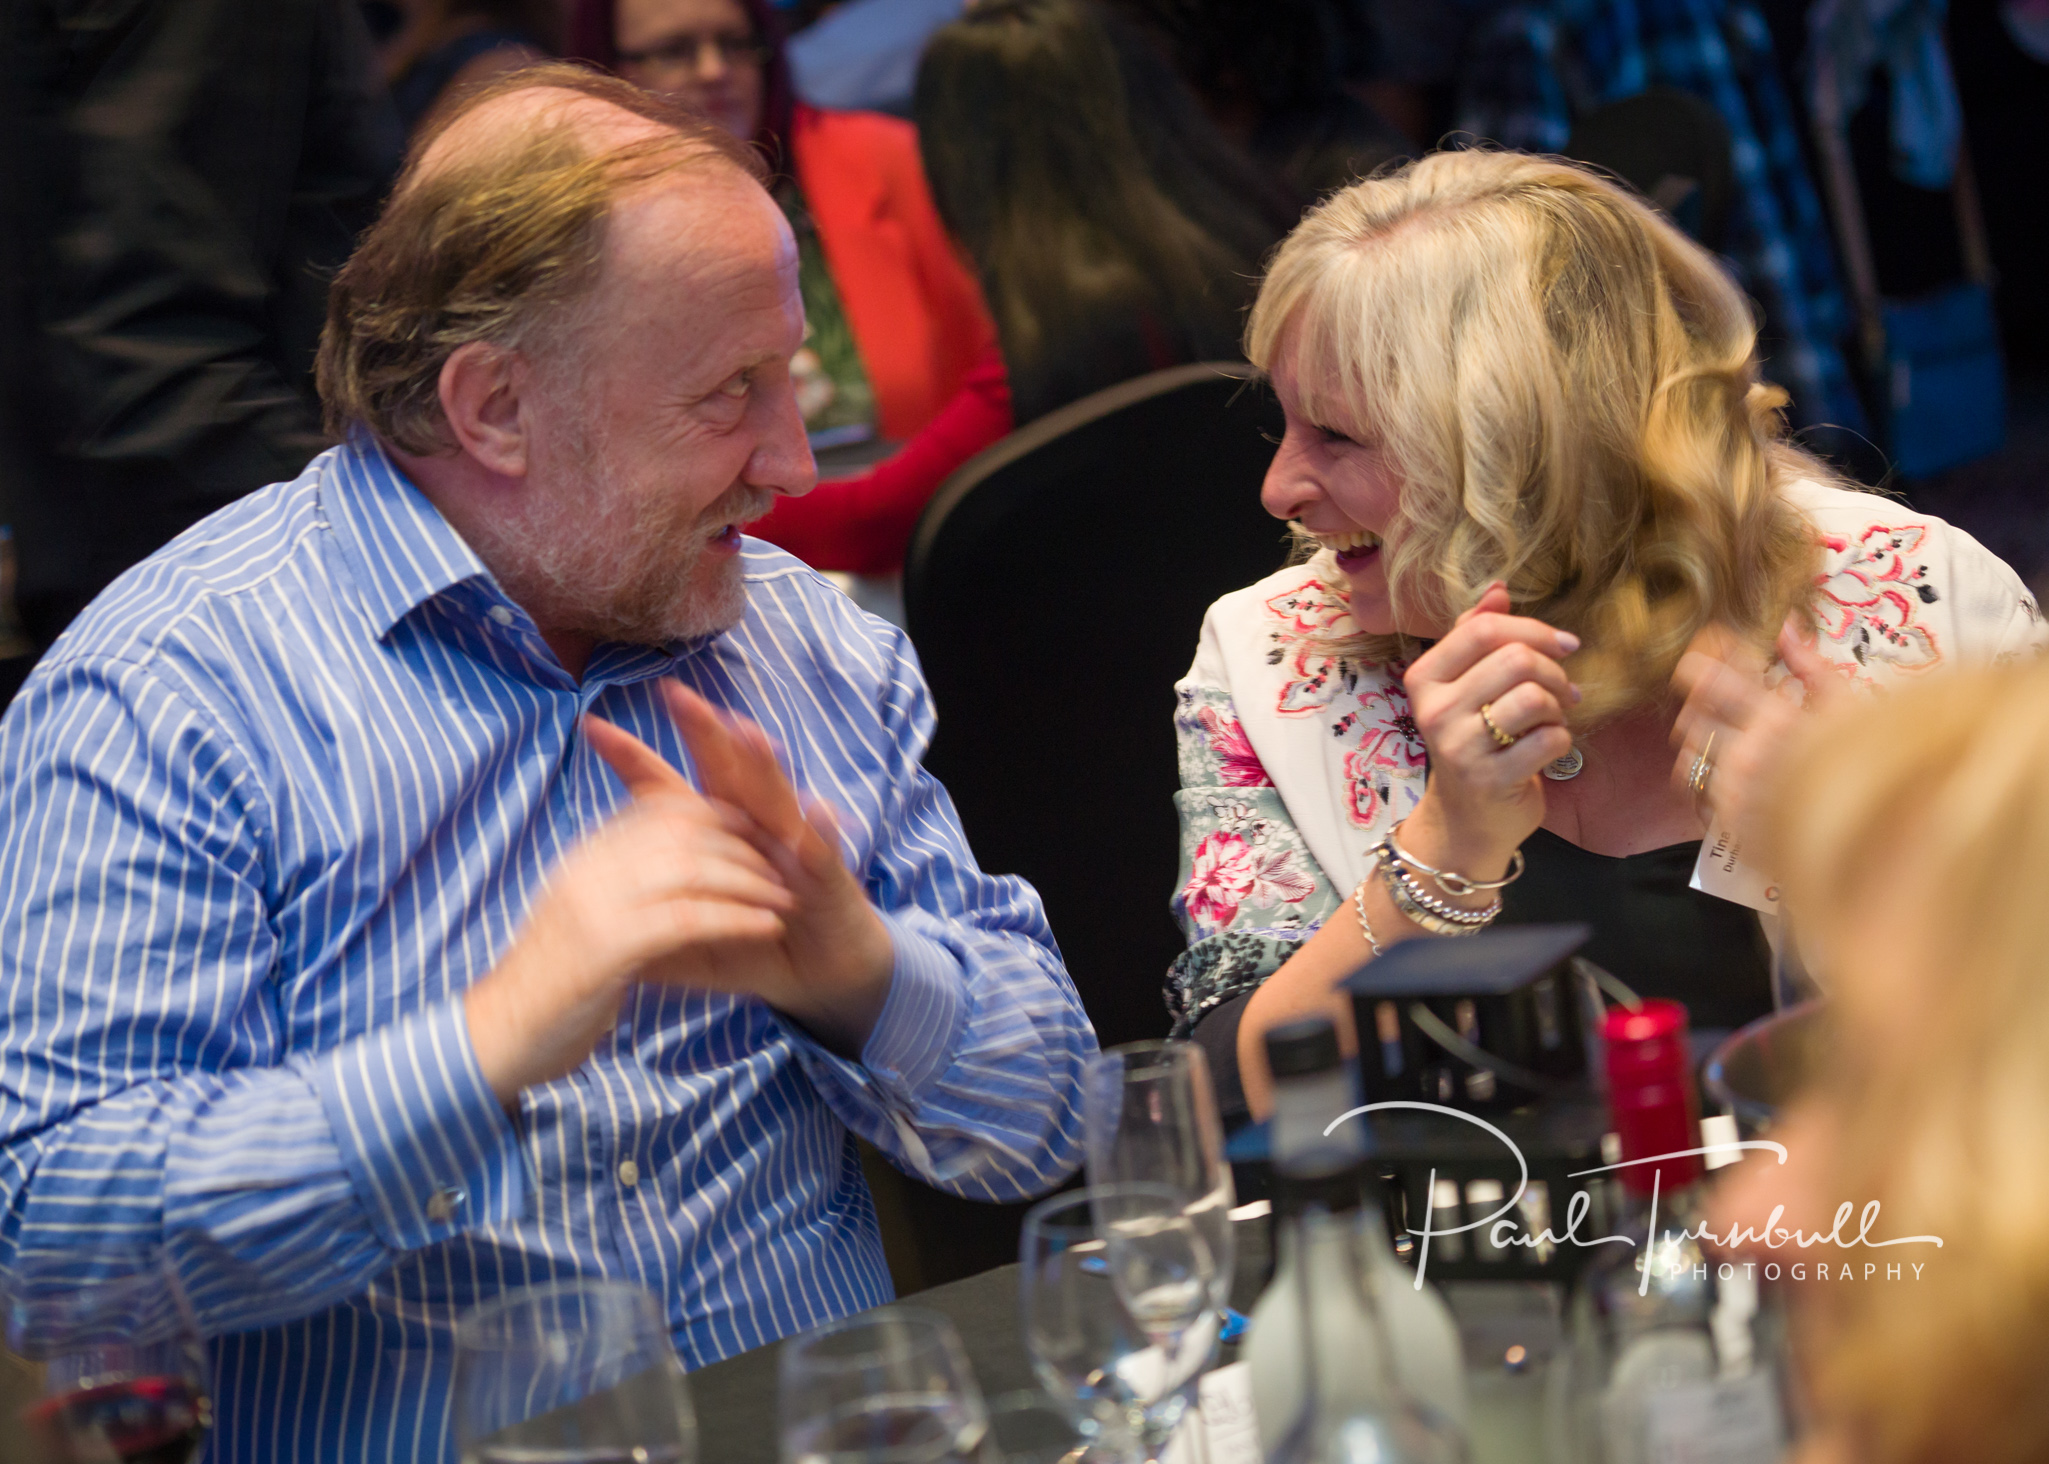 conference-event-photographer-queens-hotel-leeds-yorkshire-021.jpg